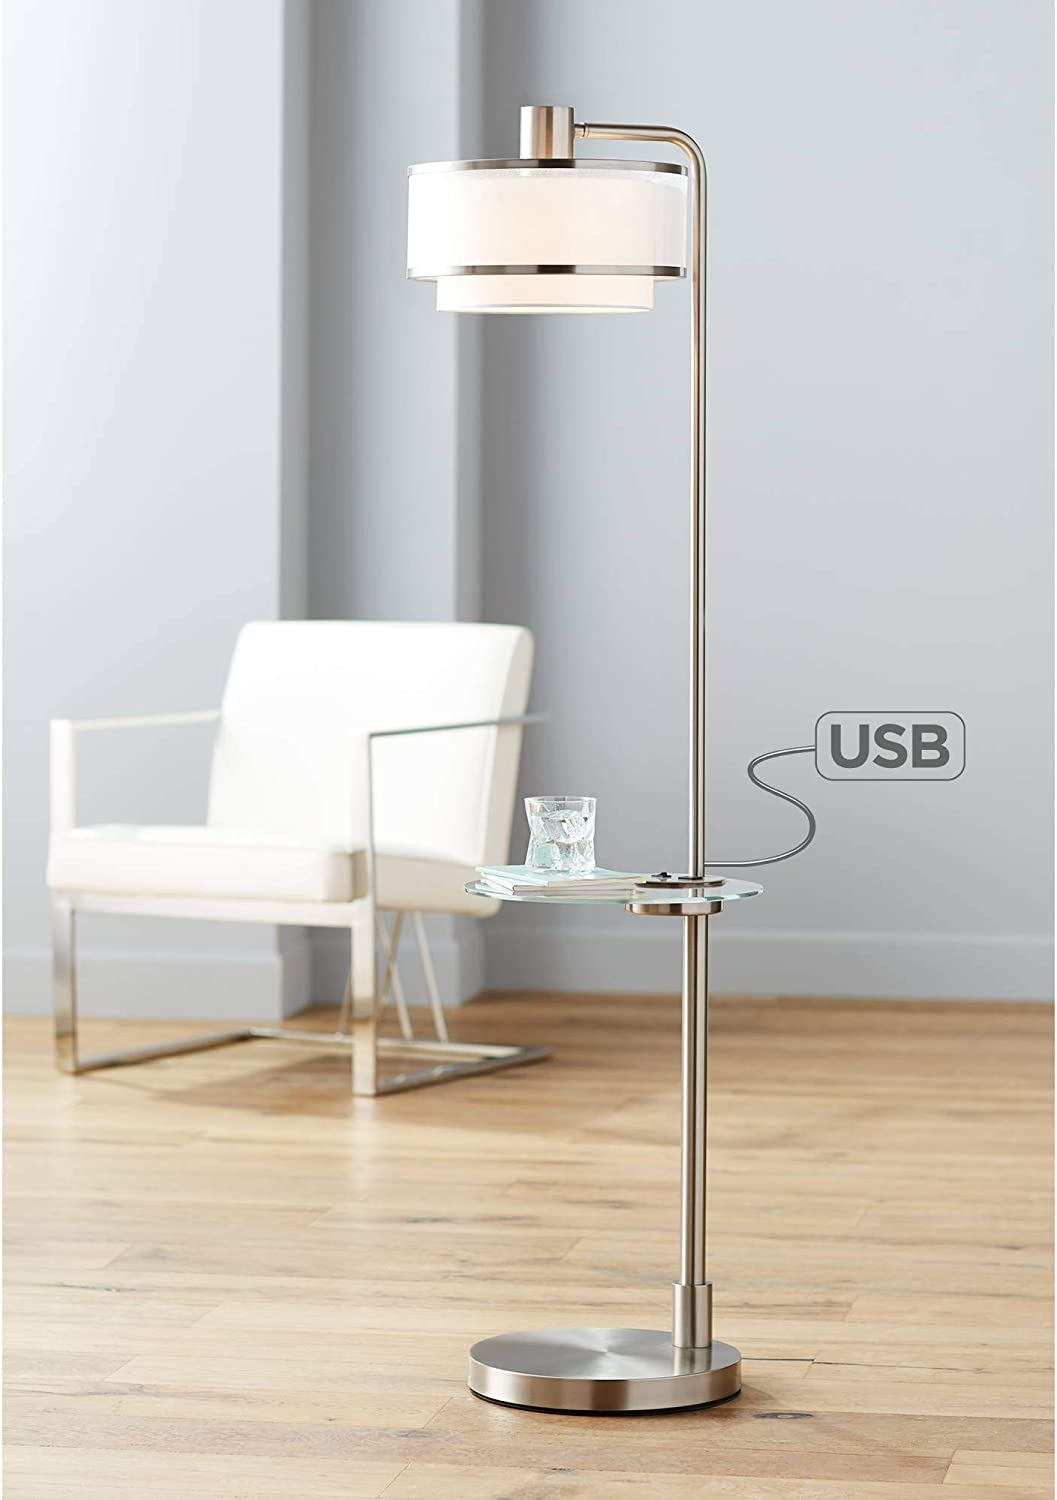 Vogue Modern Floor Lamp With Table Tempered Glass Brushed Nickel White Linen Silver Organza Double Drum Shade Usb Charging Port For Living Room Reading House Bedroom Home Office Possini Euro Design